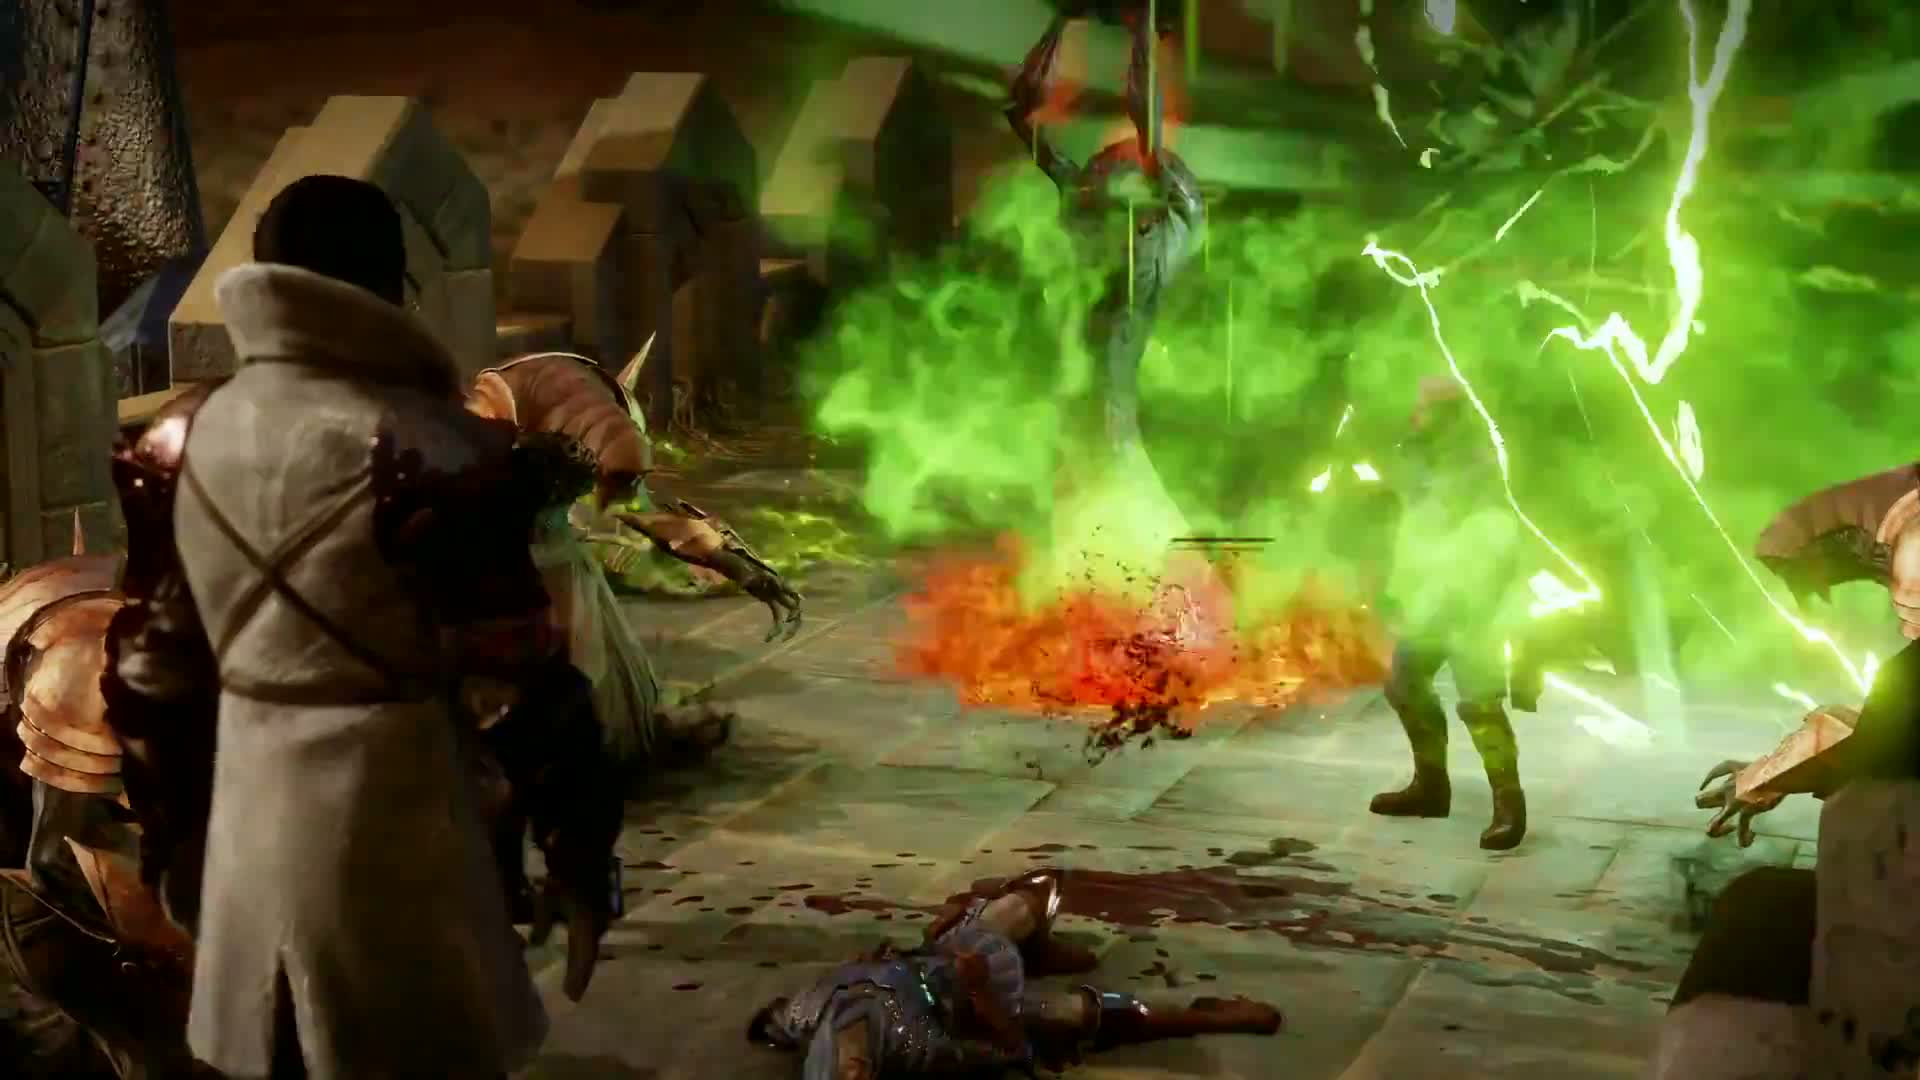 Dragon Age 3 Inquisition - Wrong Choices Gameplay Trailer